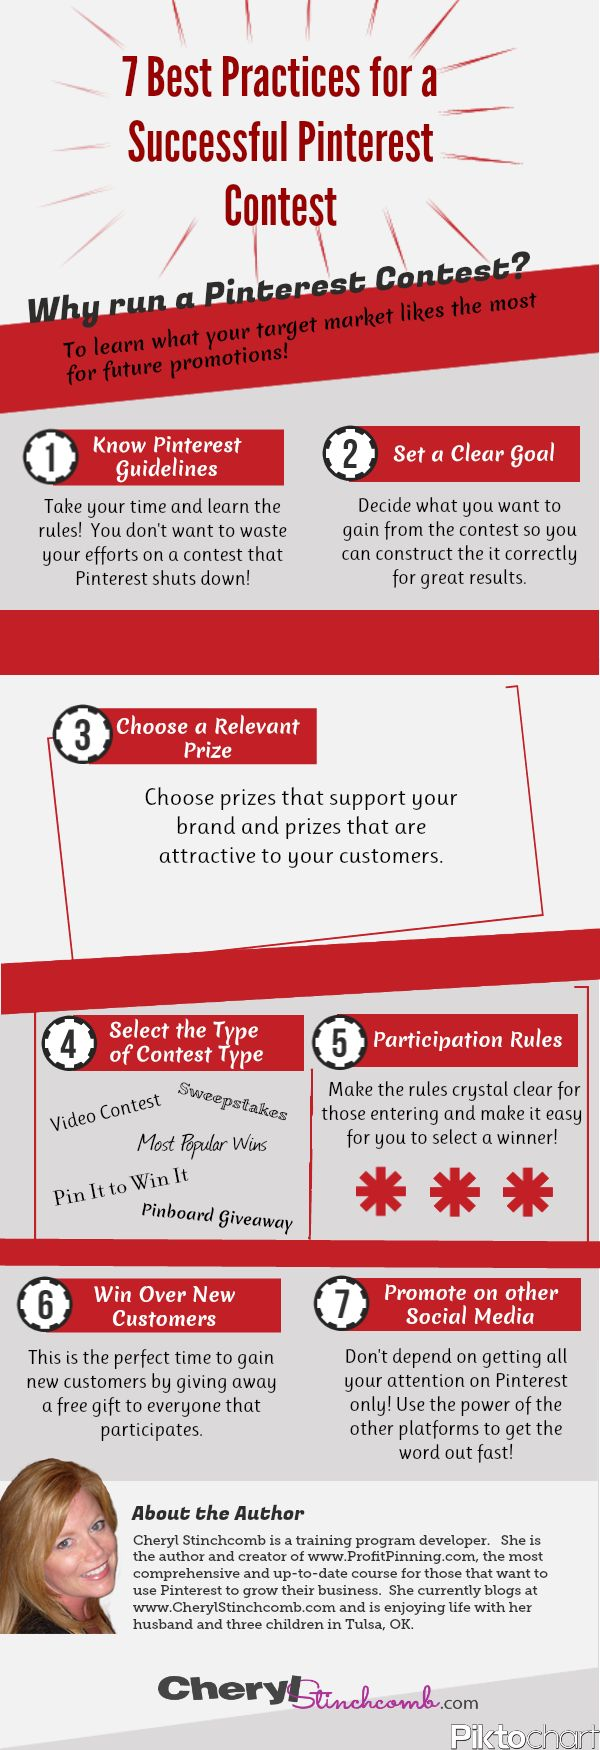 The 7 Best Practices for a Successful Pinterest Contest